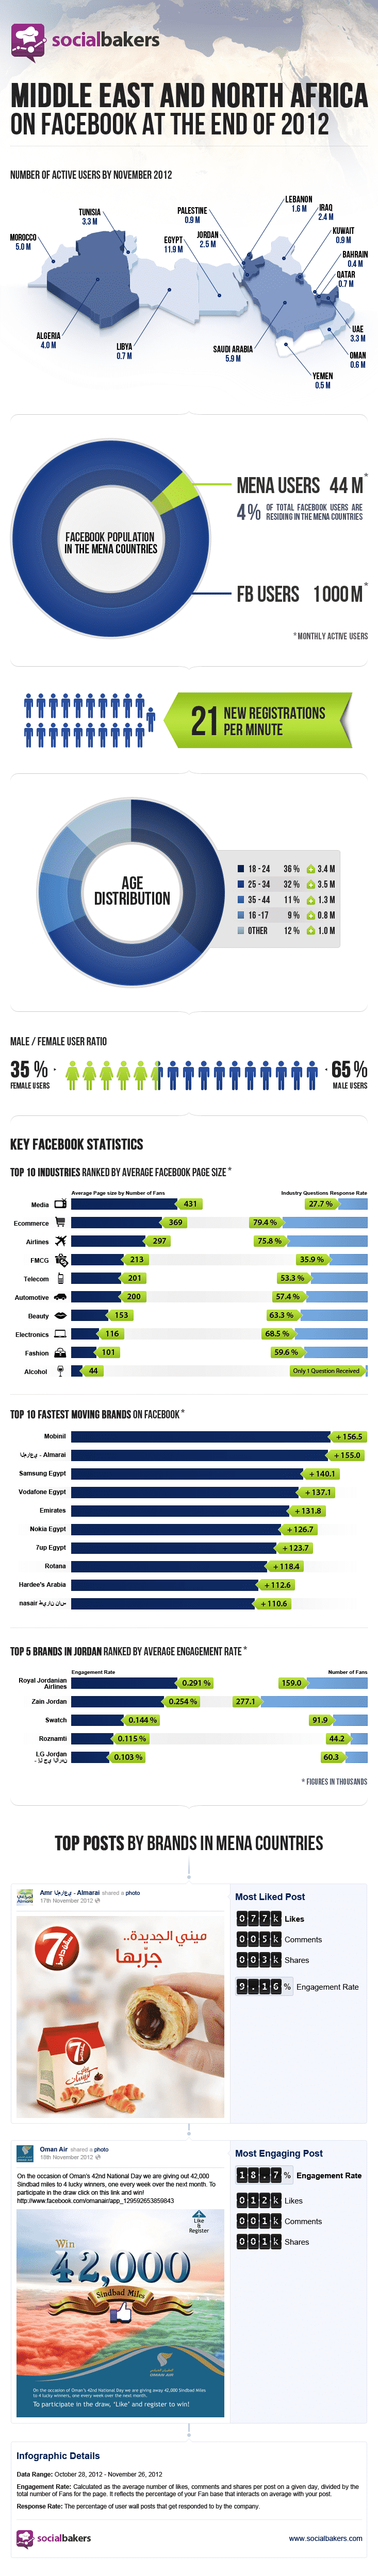 facebook usage middle east africa Facebook Usage Up 29 Percent In Middle East, North Africa [Infographic]